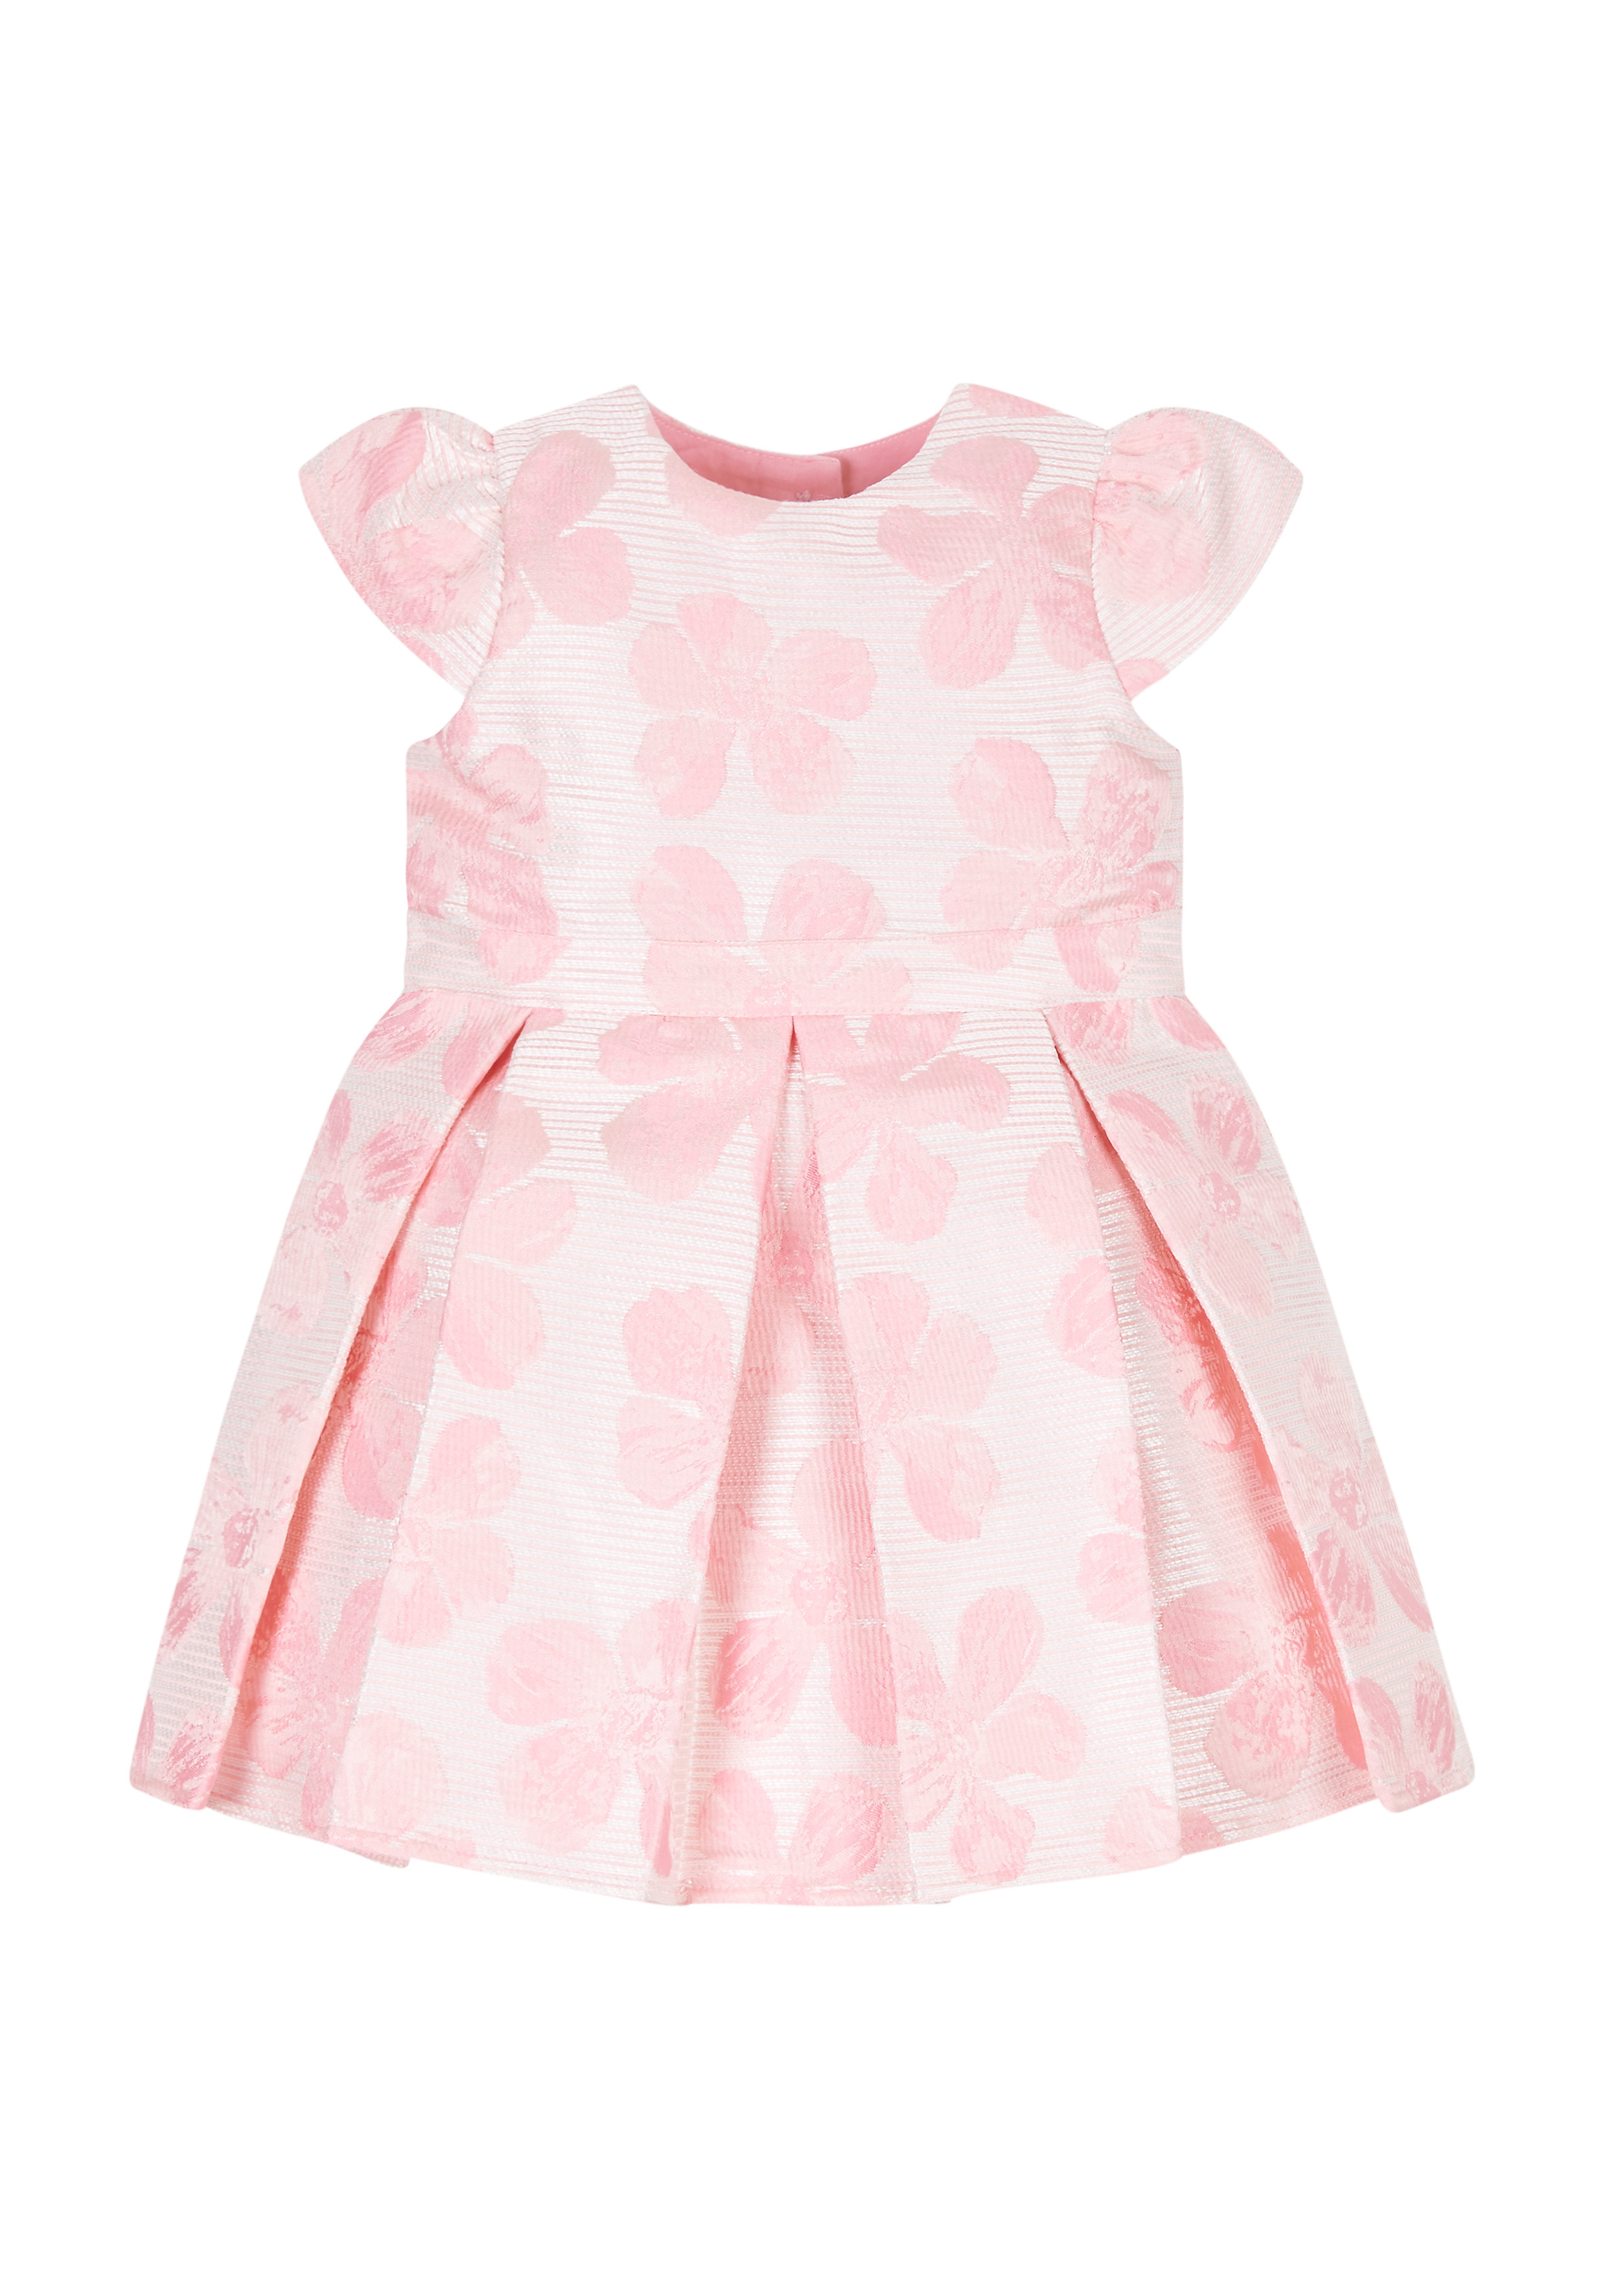 Mothercare   Girls Half Sleeves Party Dress Textured Flower Design - Pink